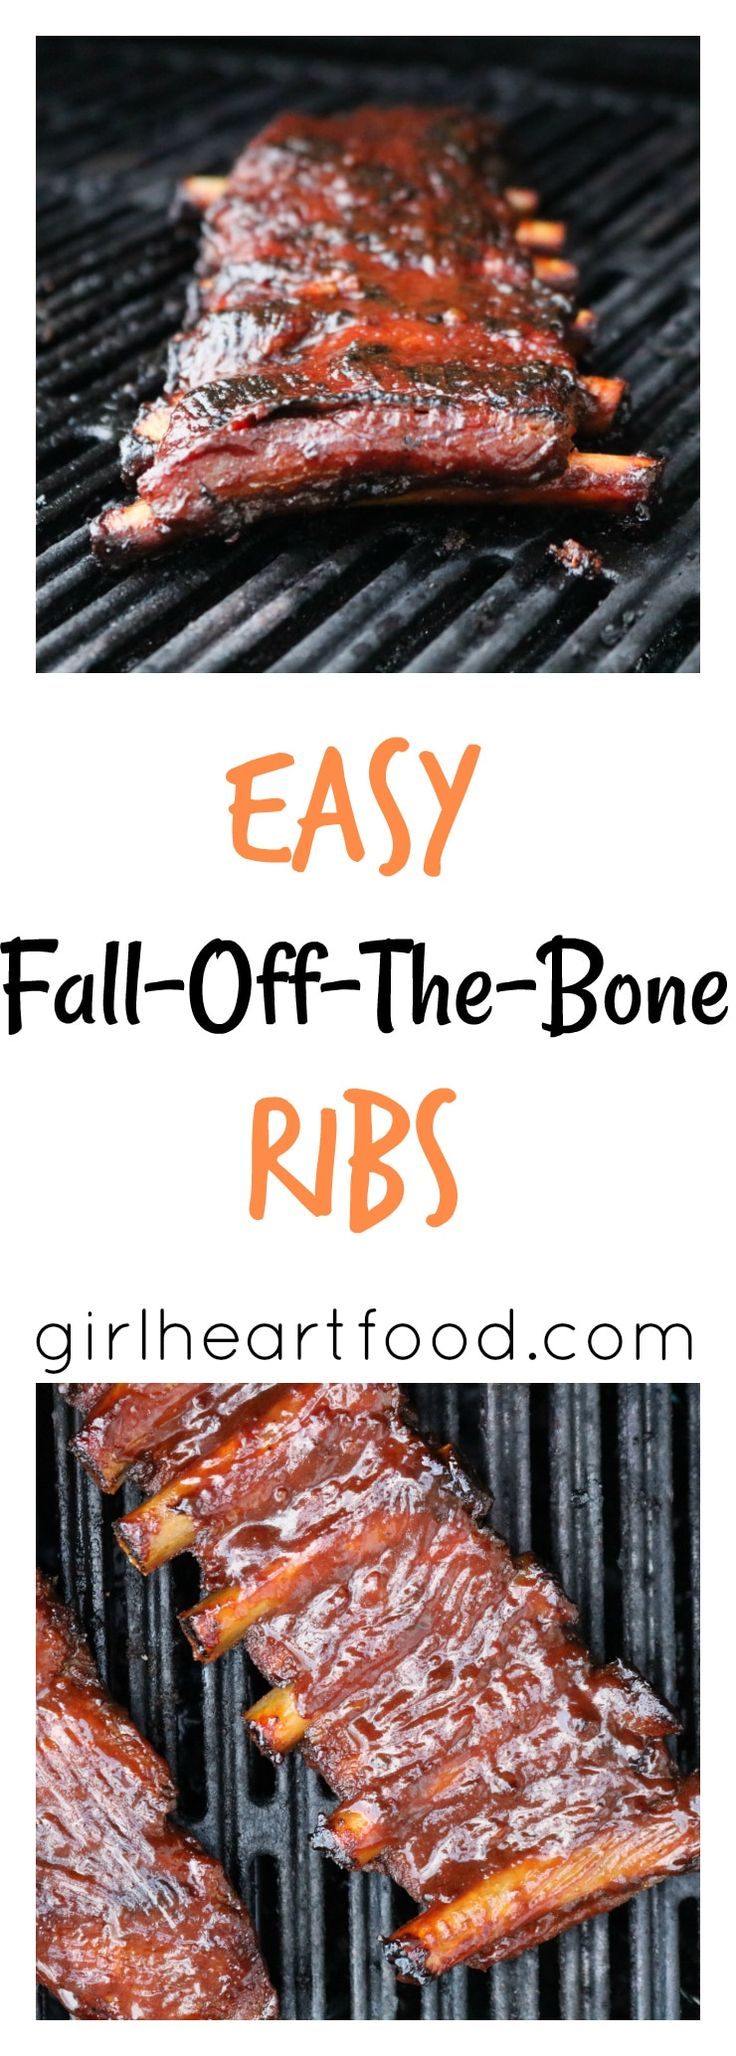 This recipe for easy fall-off-the-bone ribs is delicious! Pork ribs are coated with a simple spice mixture, baked, brushed with bbq sauce & then grilled. The only rib recipe you'll need!  #ribs #pork #grilling #bbq #barbecue #ovenbaked #dinner #spiceblend  via @Girlheartfood